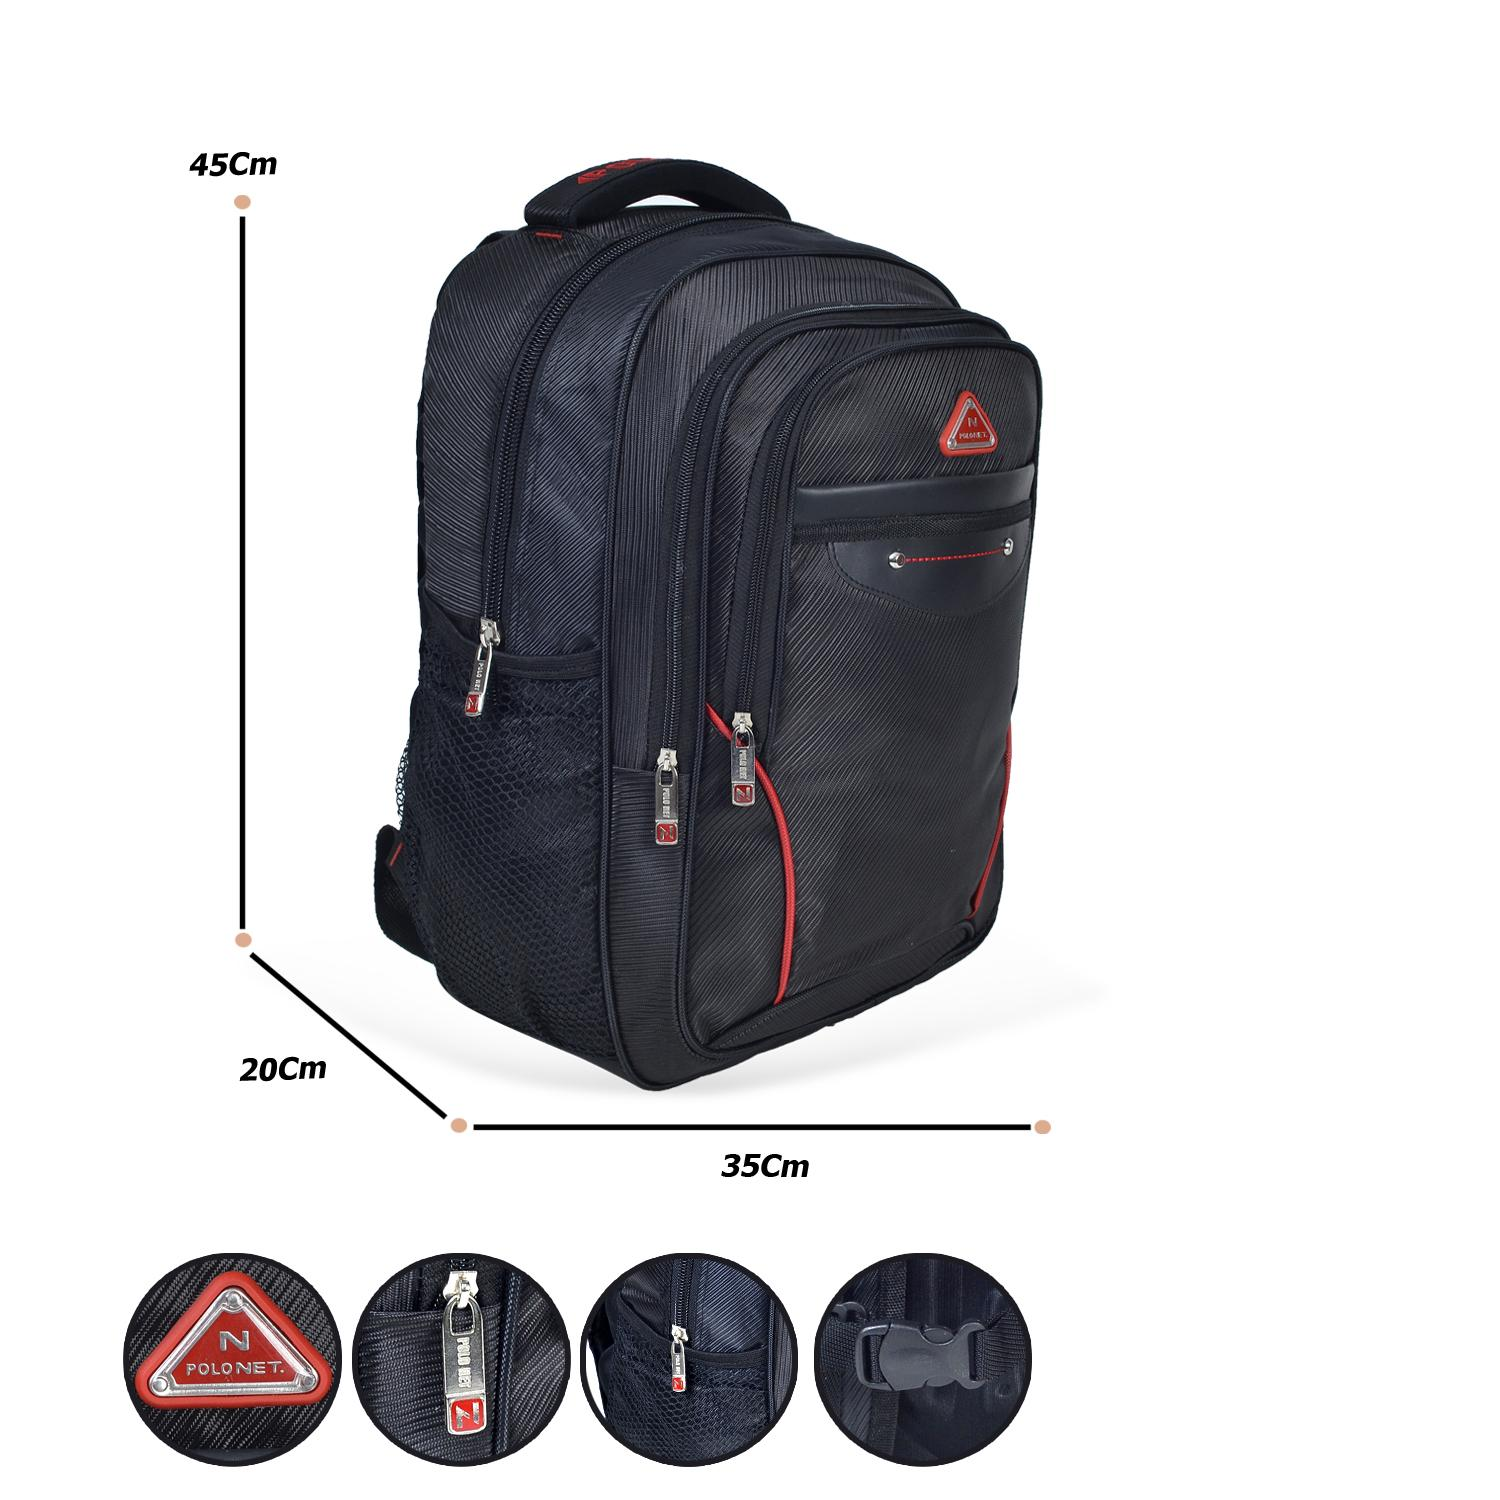 Polo Net Embos Backpack Tas Ransel Pria 18 Inchi 4012-18 ZV Polyester Nylon Original